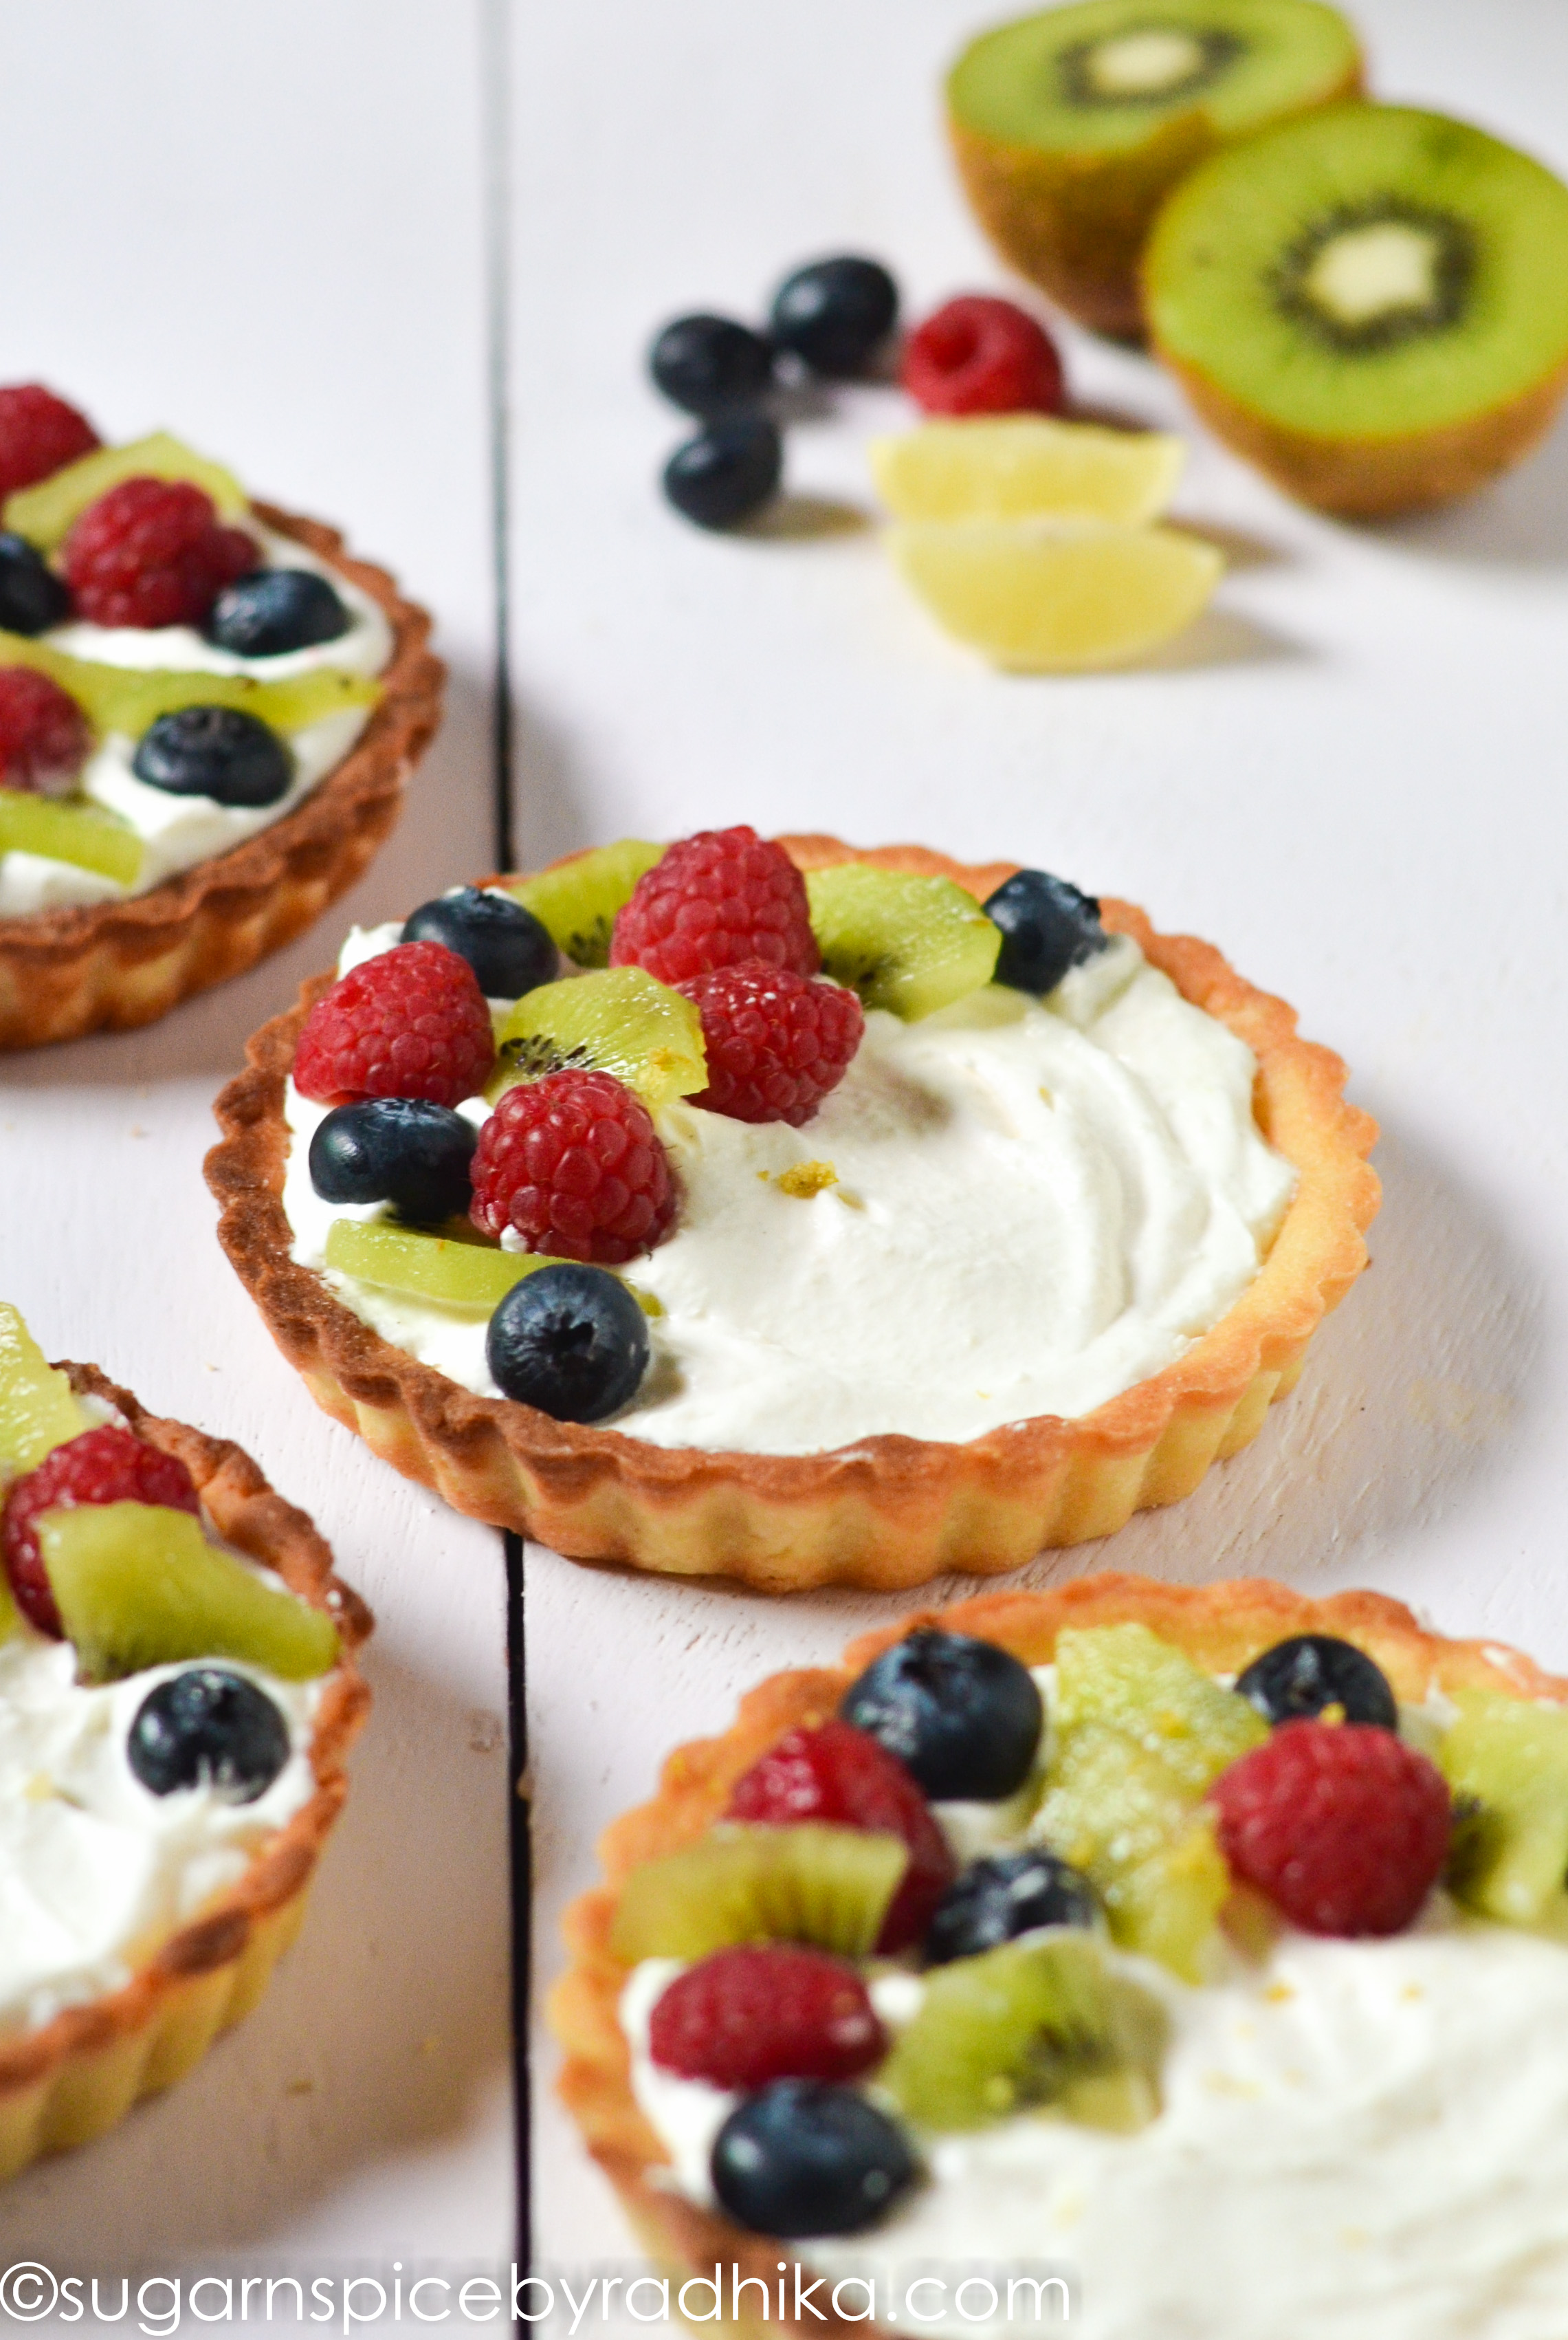 Berry Tart with Lemon Mascarpone Cream